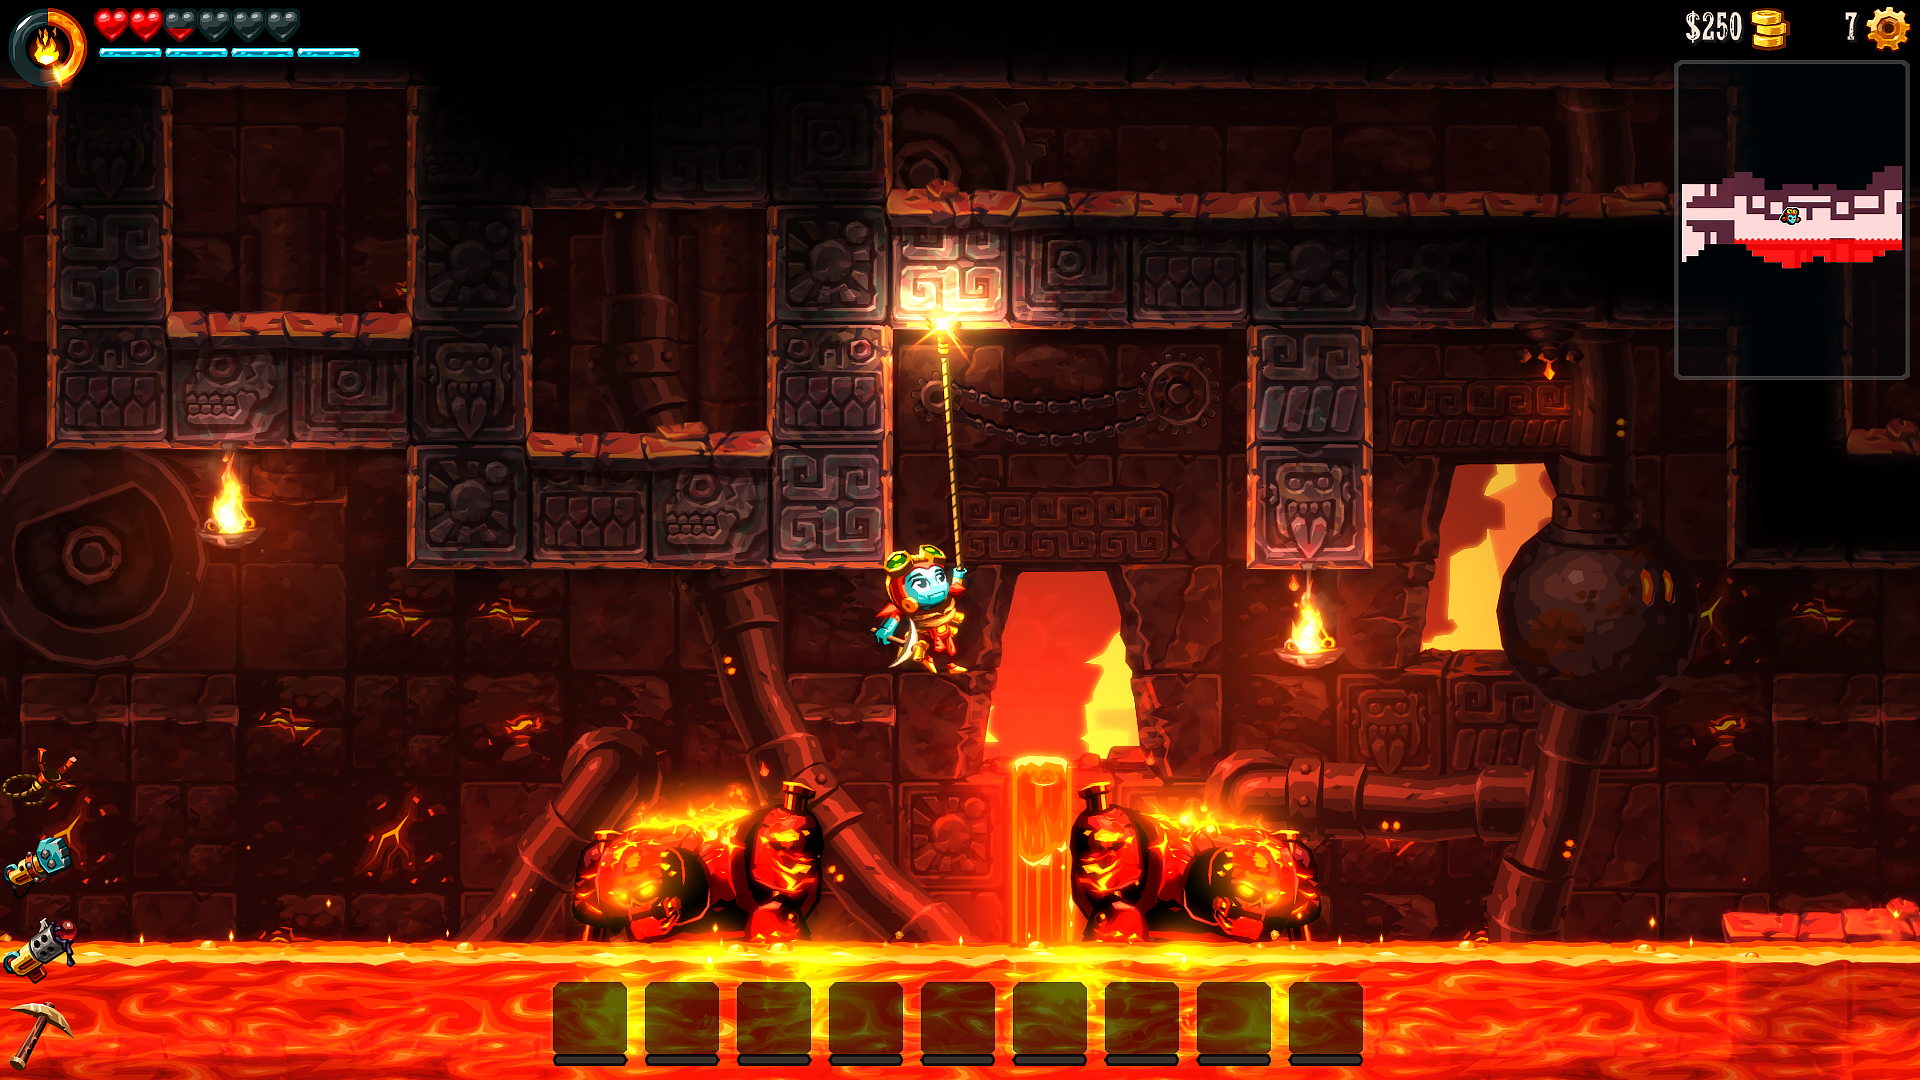 SteamWorld-Dig-2-Screenshot-13.png